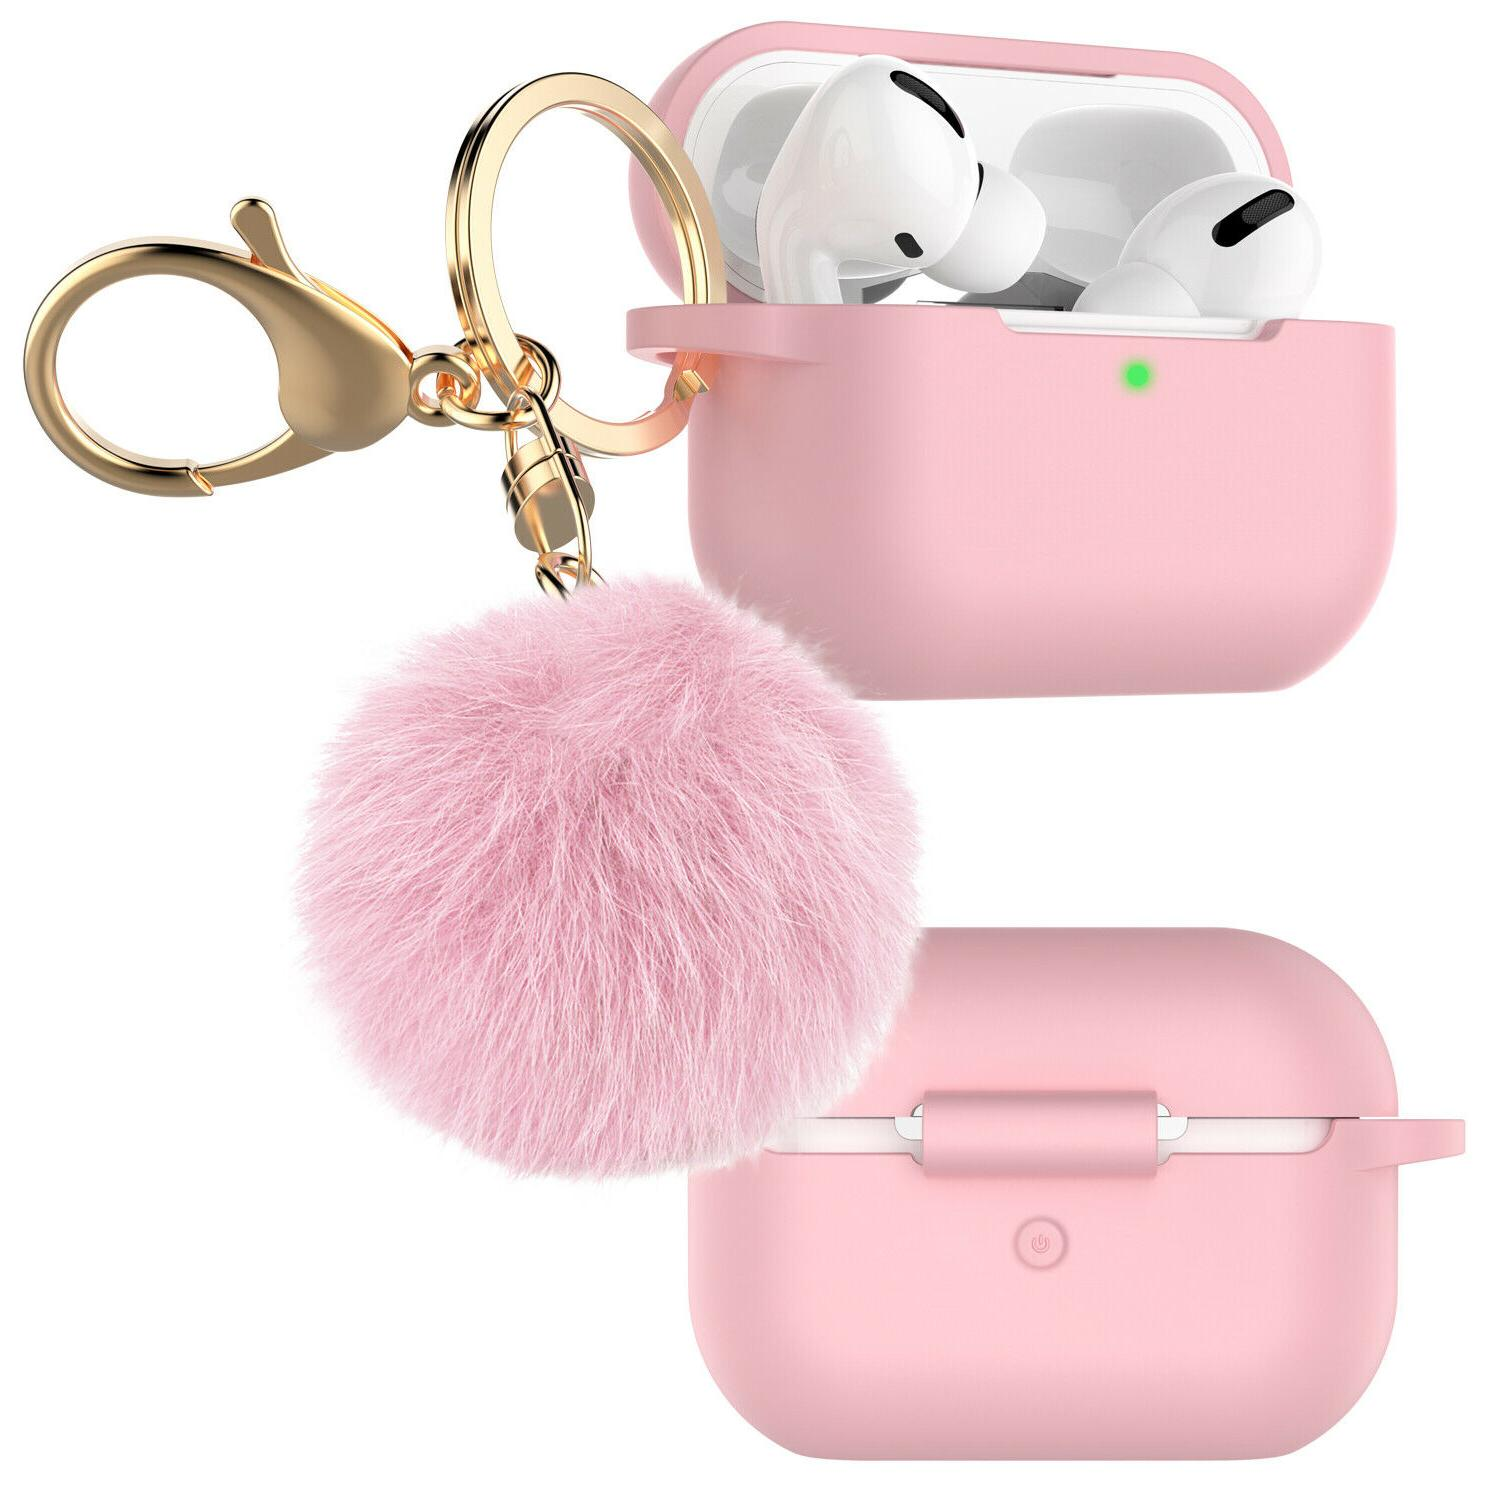 For Silicone Charging Case Cover Skin with Fur